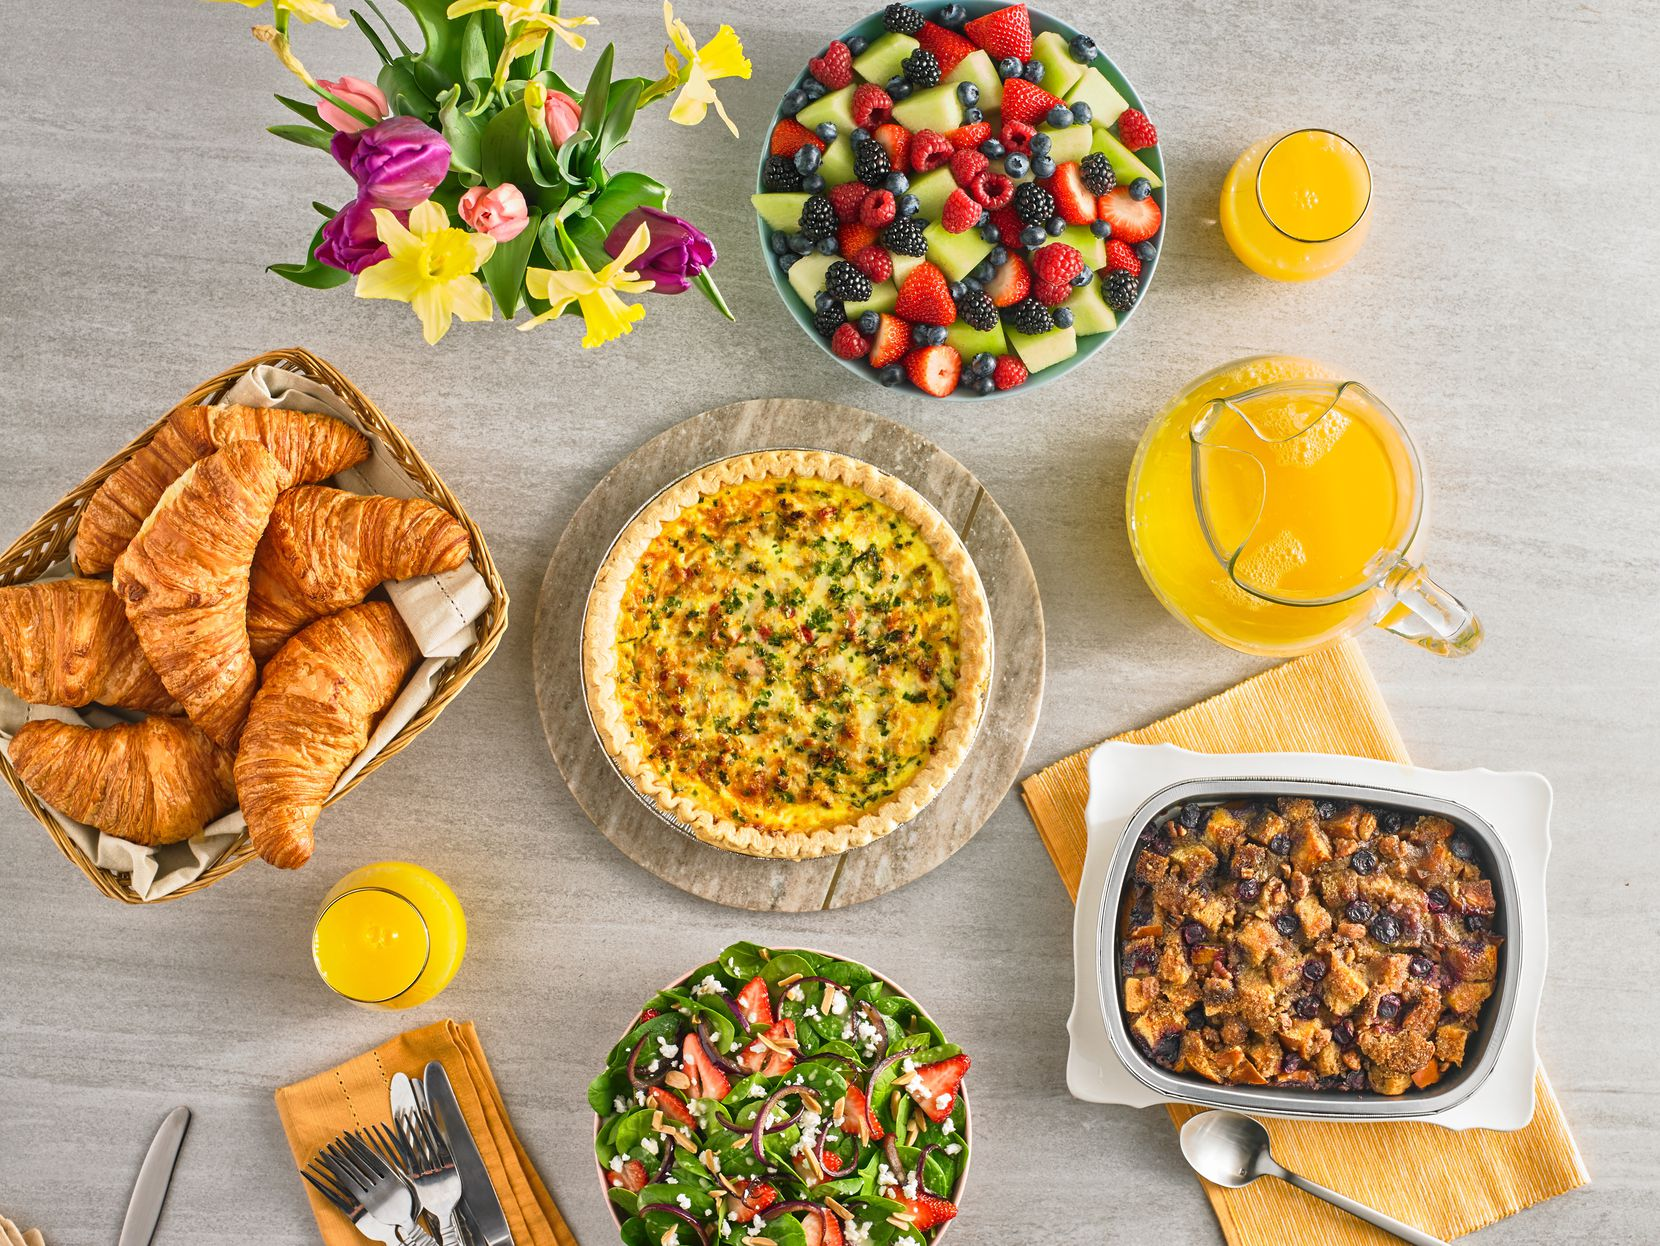 Central Market offers an Easter brunch meal bundle this year that includes Italian sausage and arugula quiche, spinach and strawberry family salad, berries and melon, French butter croissants, orange juice and challah French toast casserole.